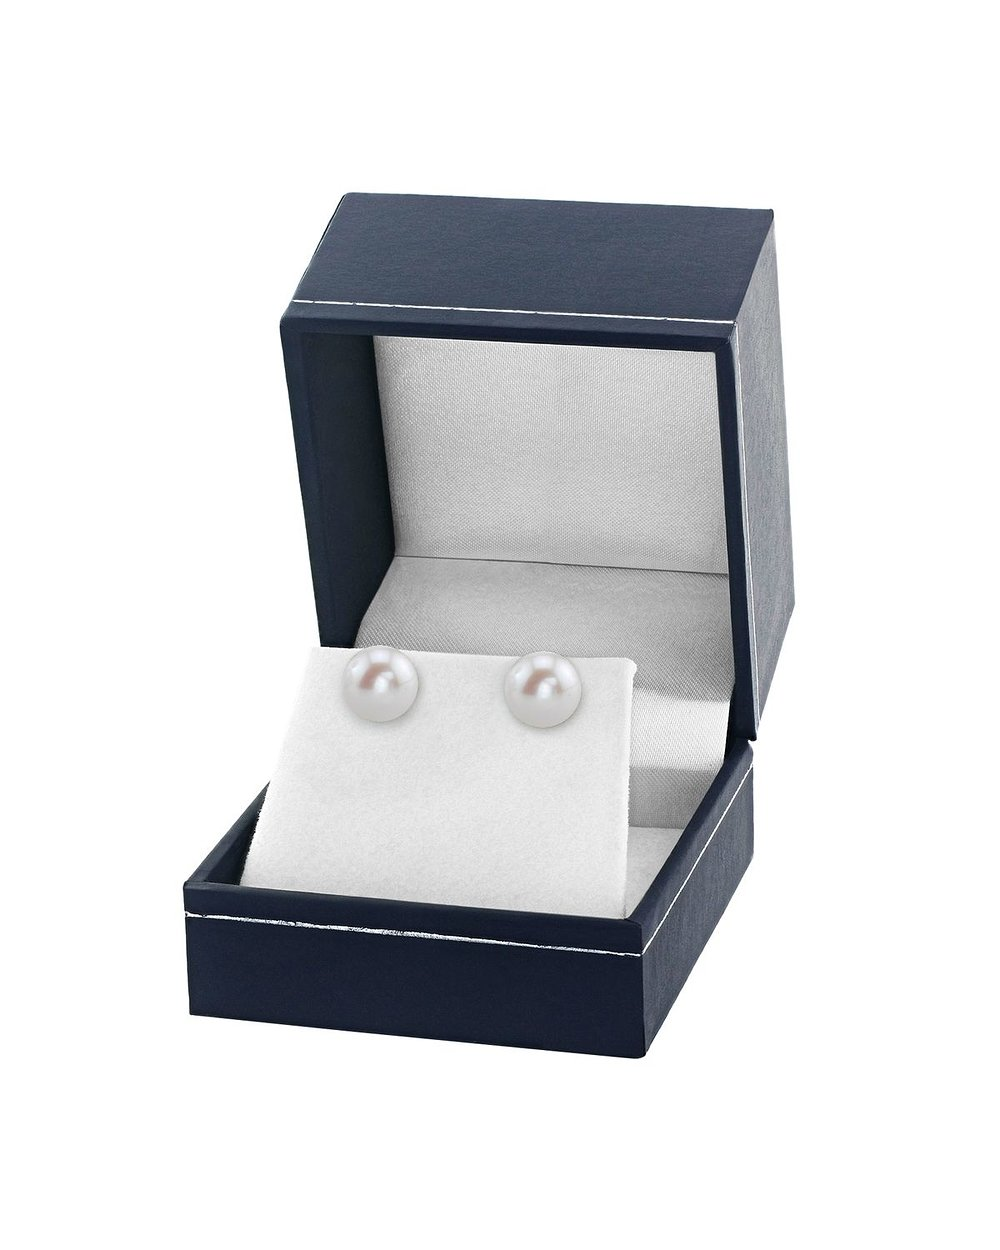 THE PEARL SOURCE 14K Gold 9-10mm AAA Quality Round White Freshwater Cultured Pearl Stud Earrings for Women by The Pearl Source (Image #3)